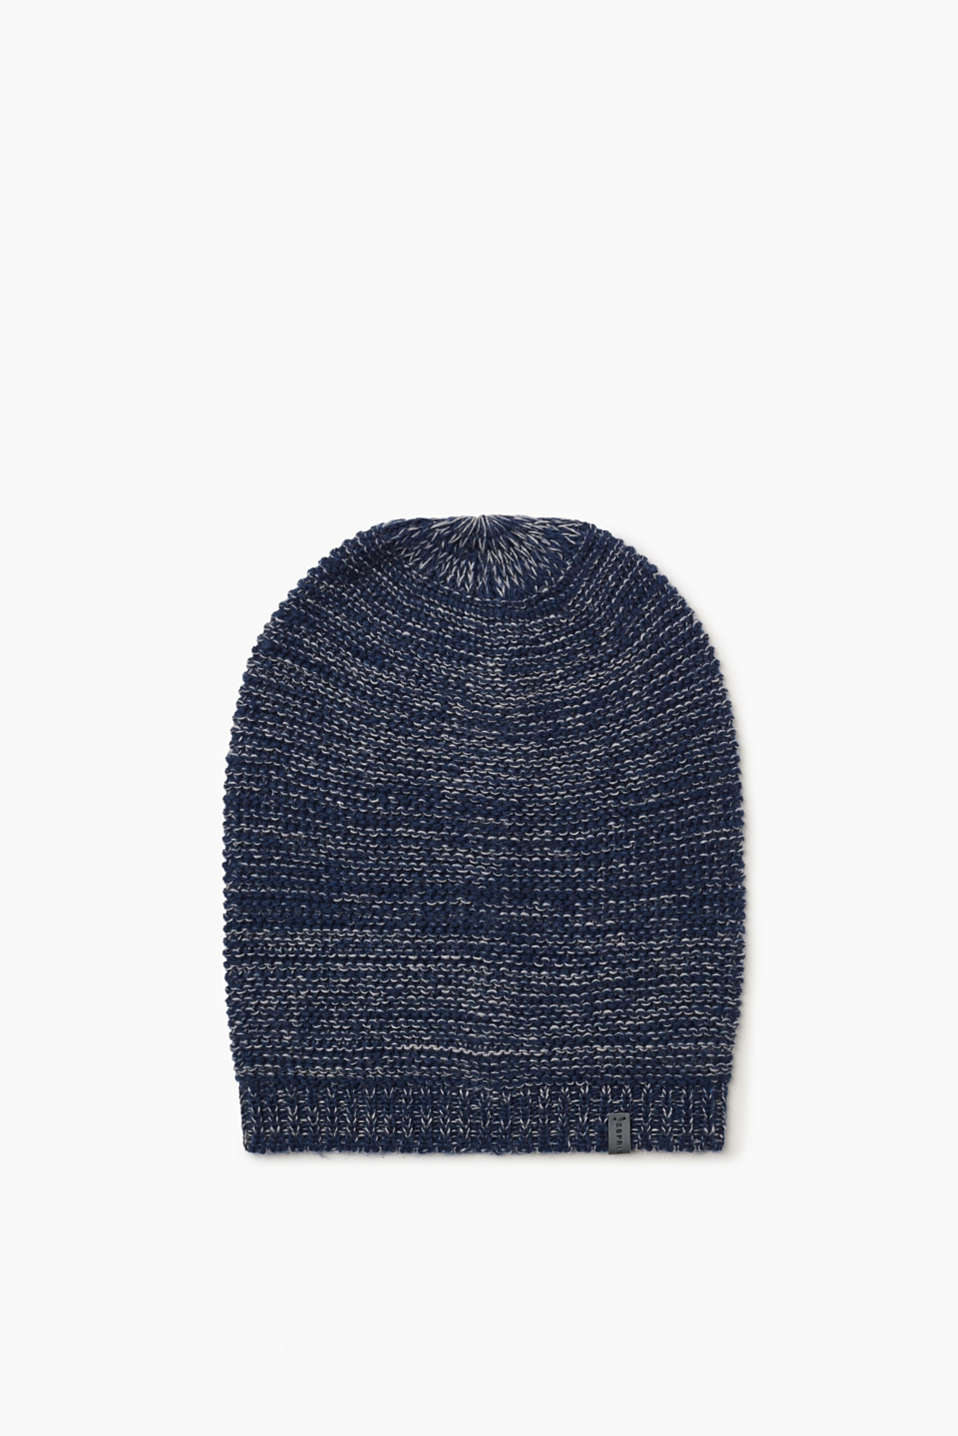 We love knitwear! This bi-colour, blended wool beanie knit in airy garter stitch is no exception.